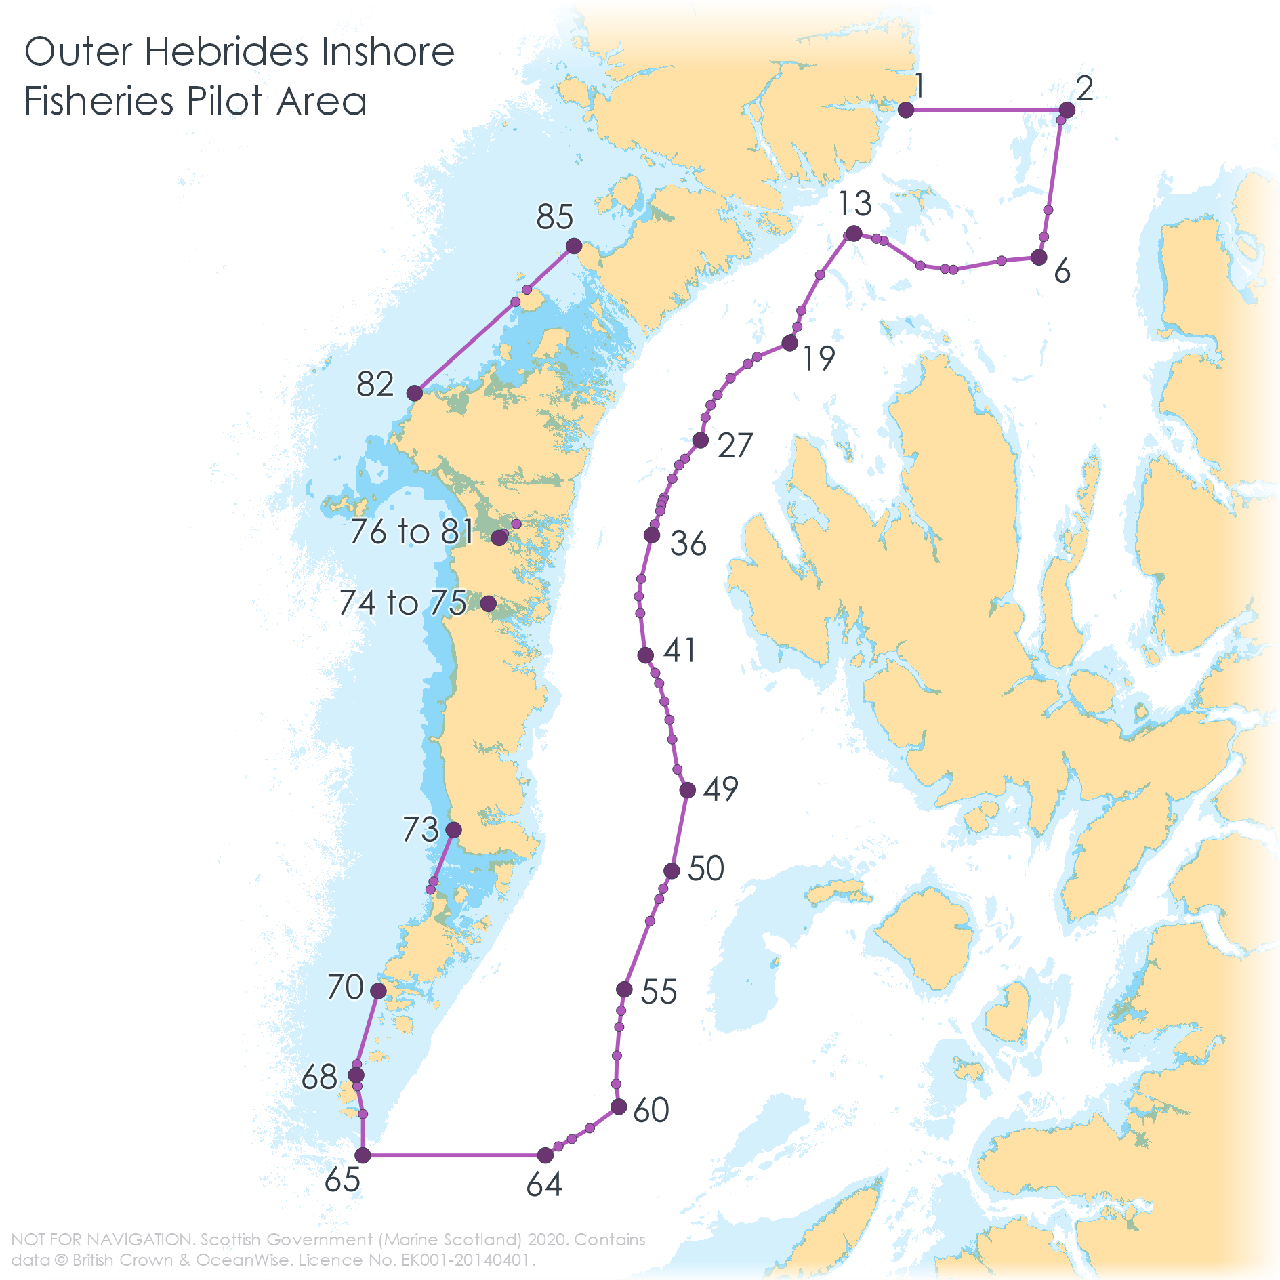 Outer Hebrides Inshore Fisheries Pilot